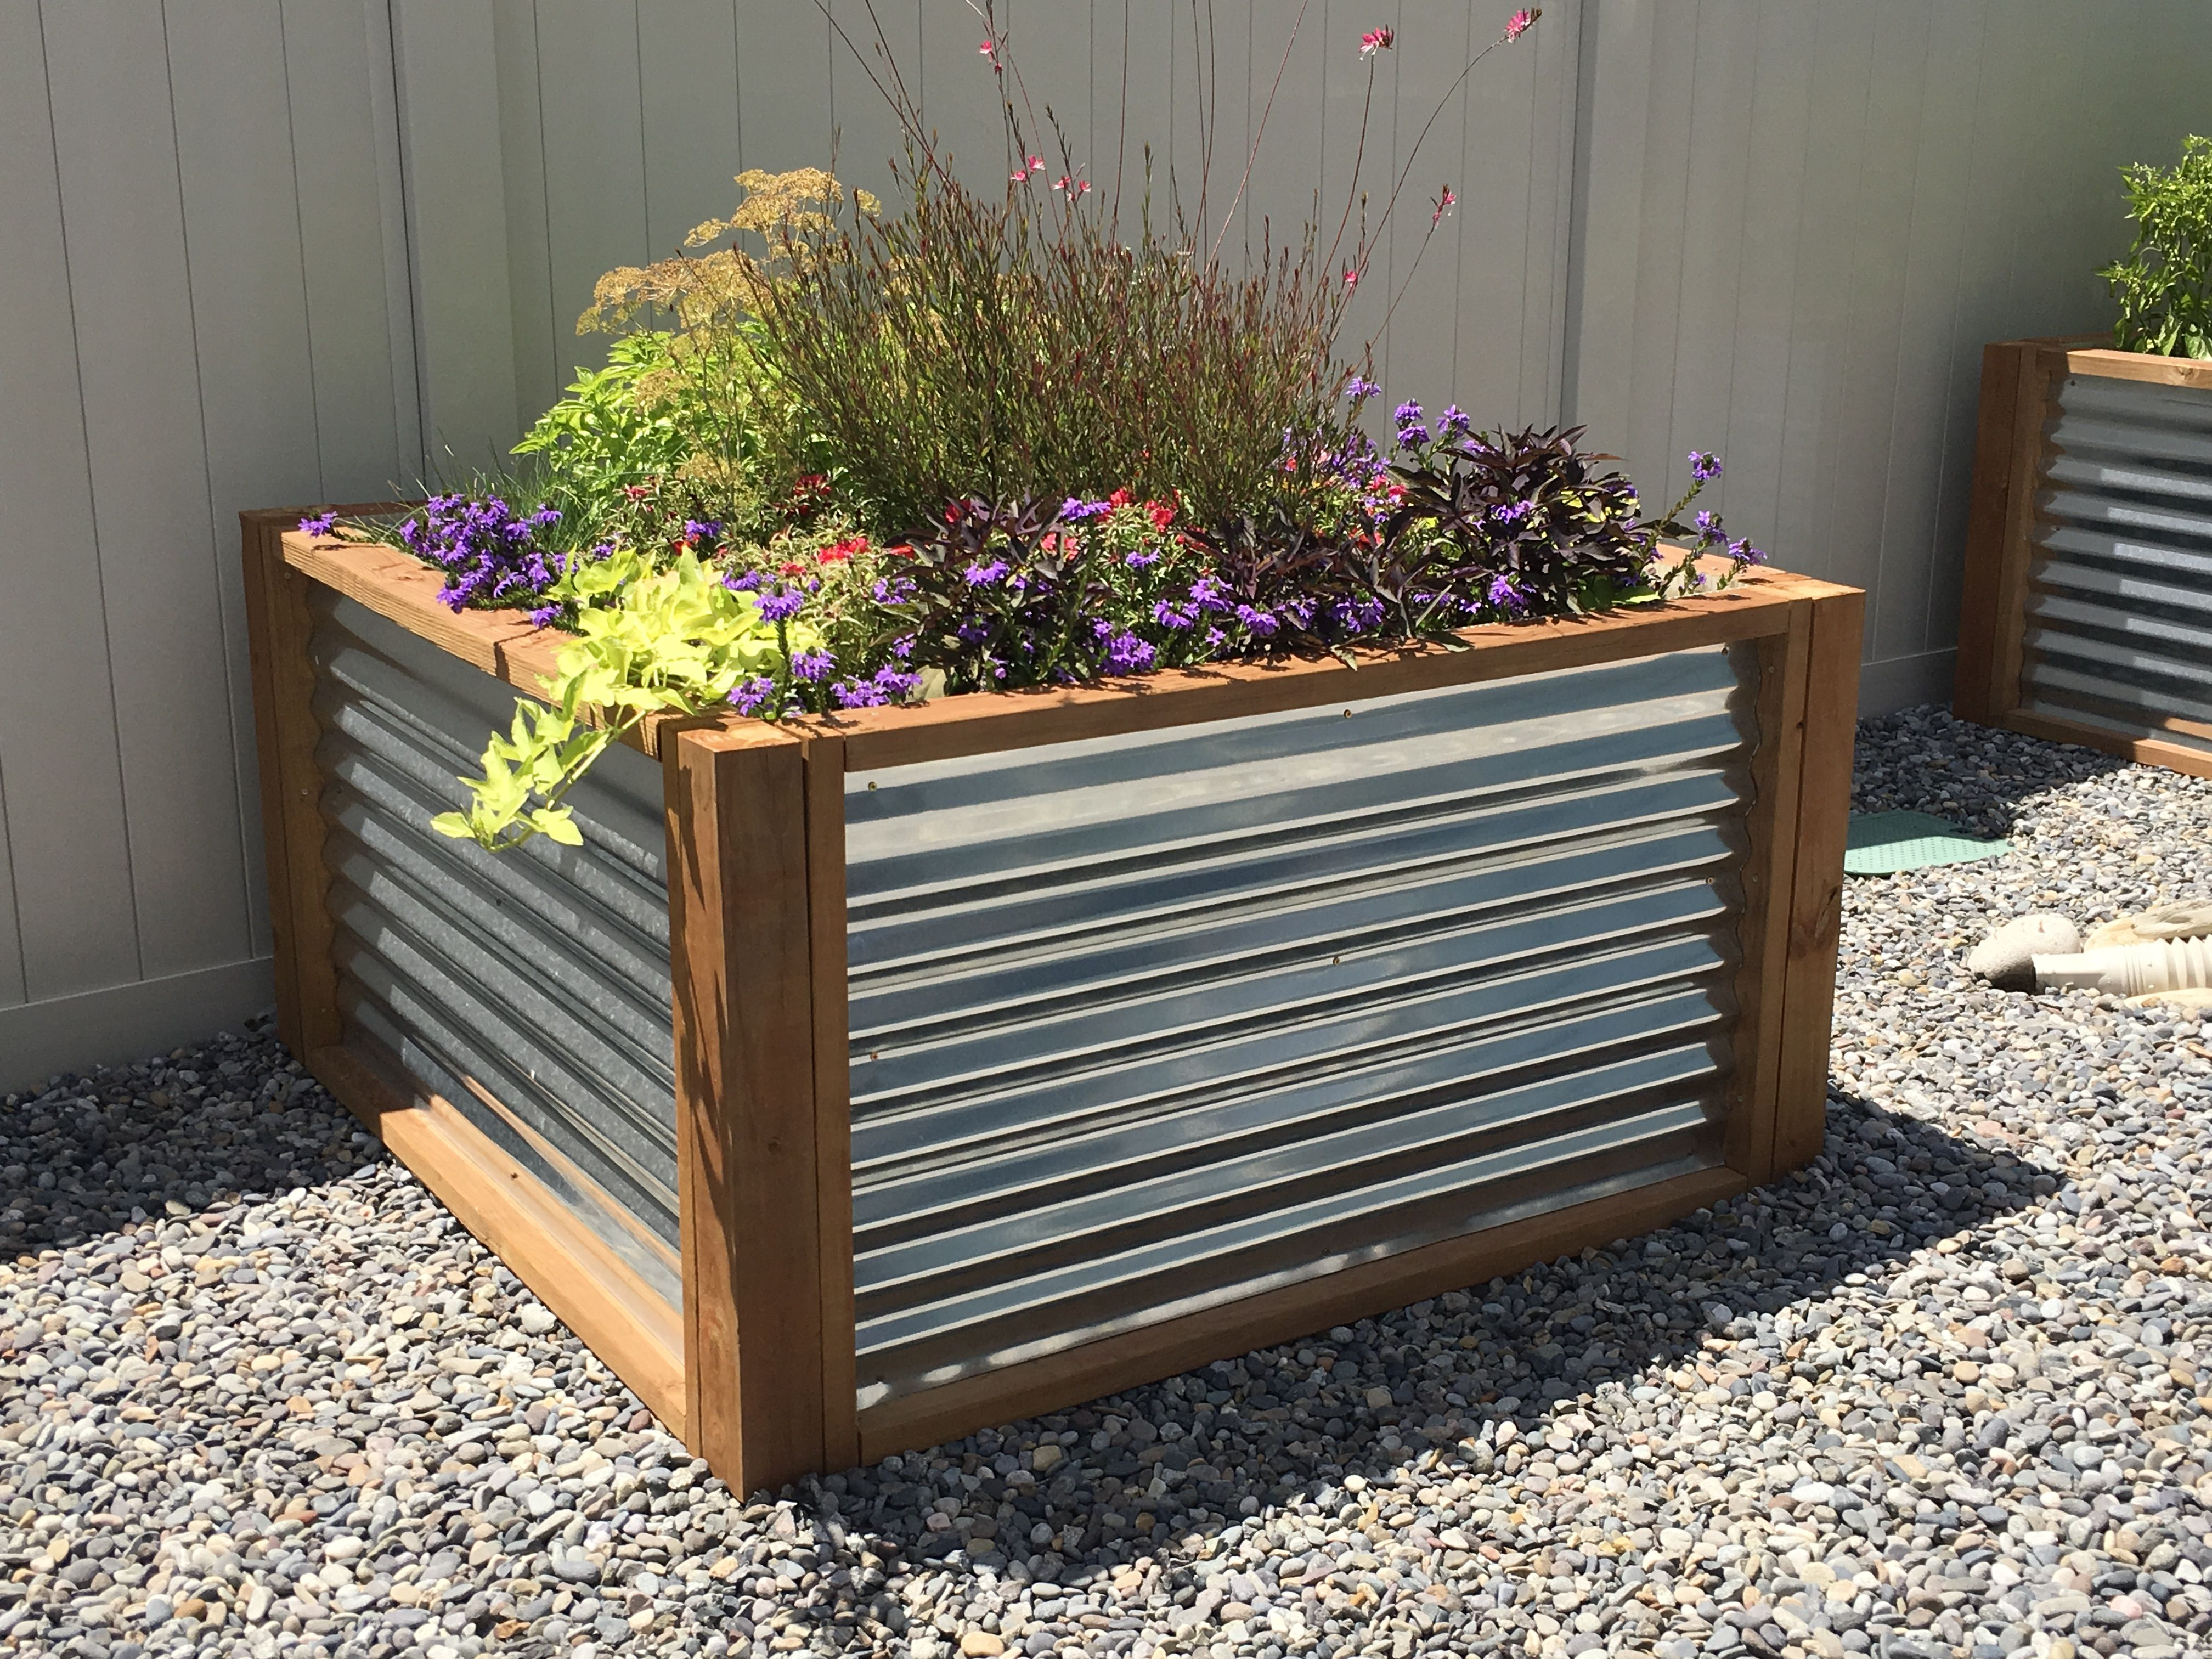 4X4 Galvanized Flower Bedturned out amazing! Outdoor